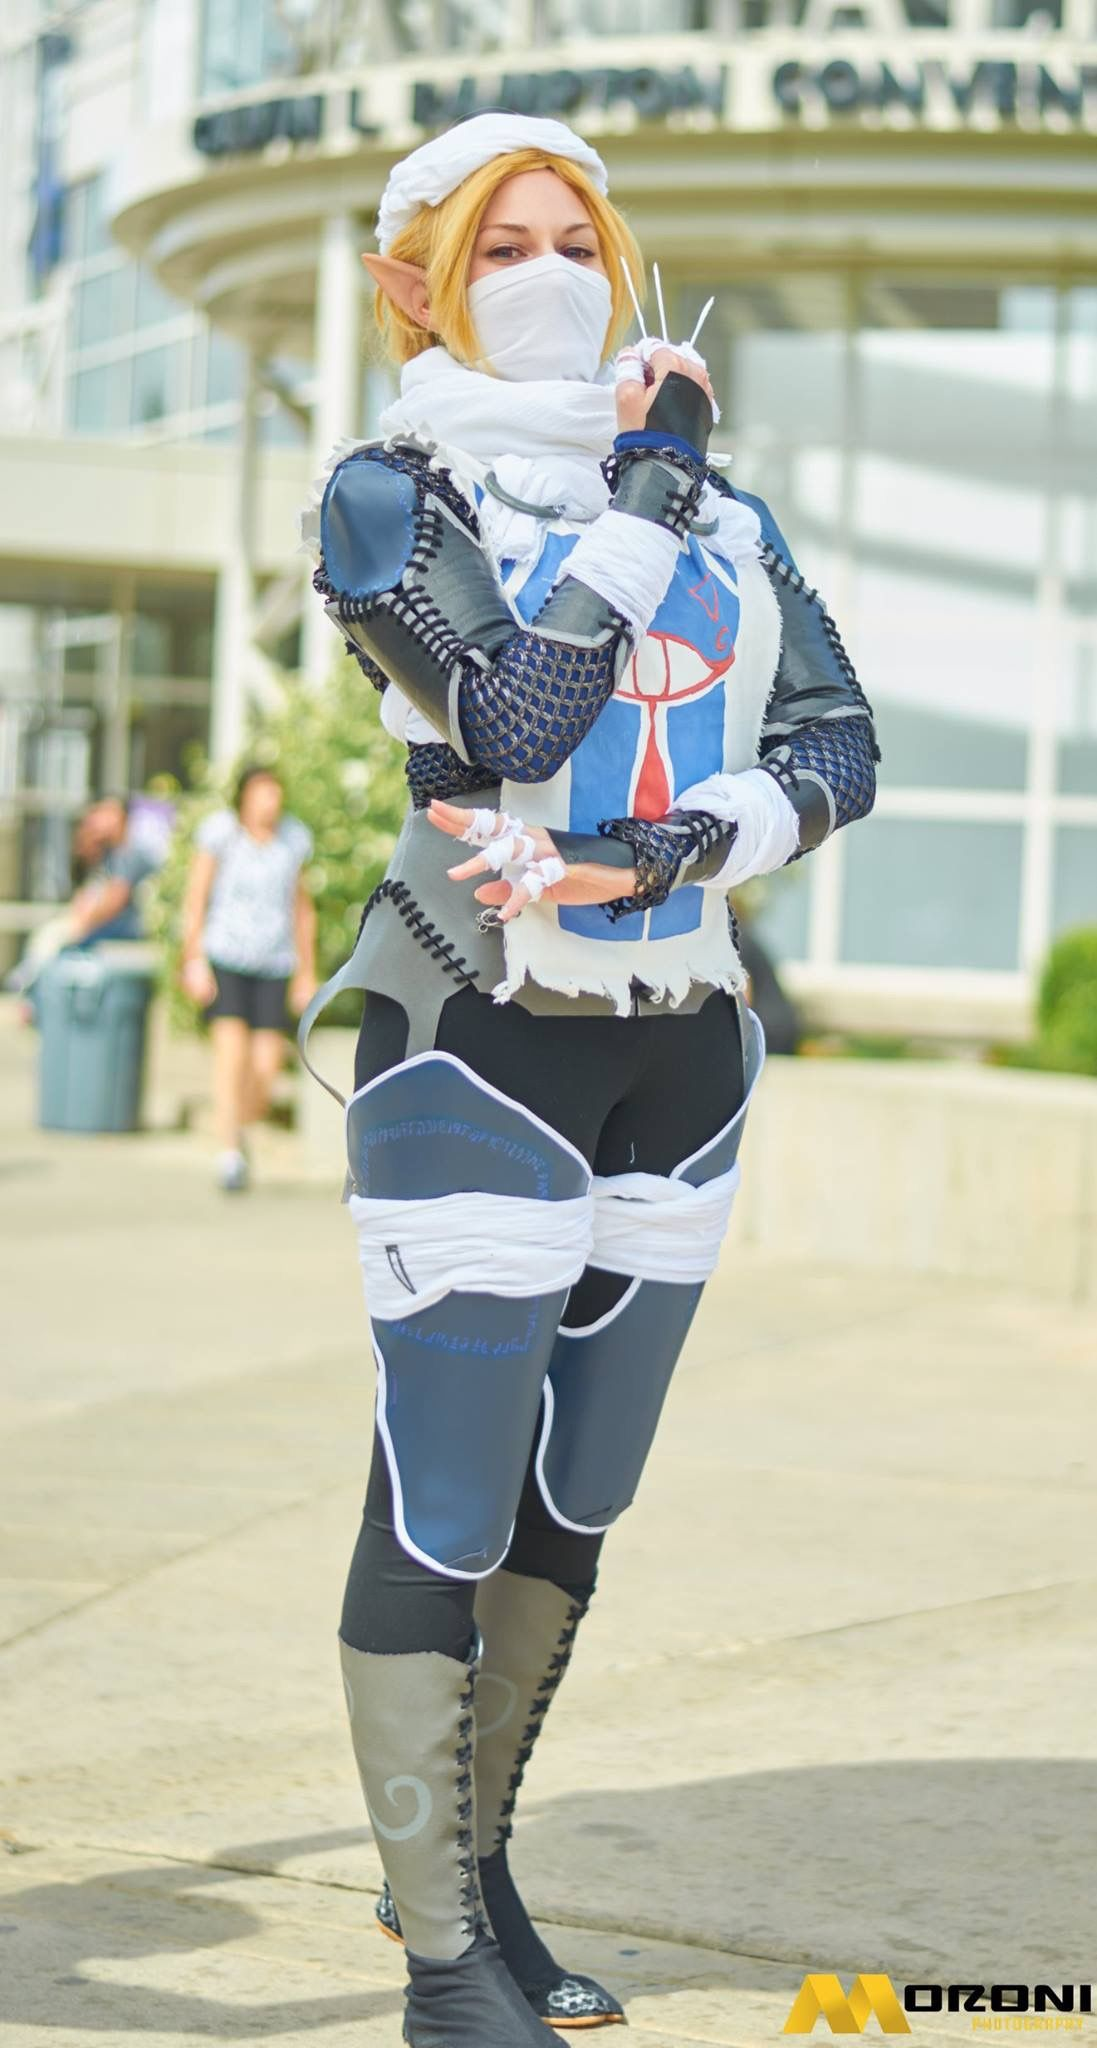 [Self] Sheik cosplay made and modeled by me (Project Sheik